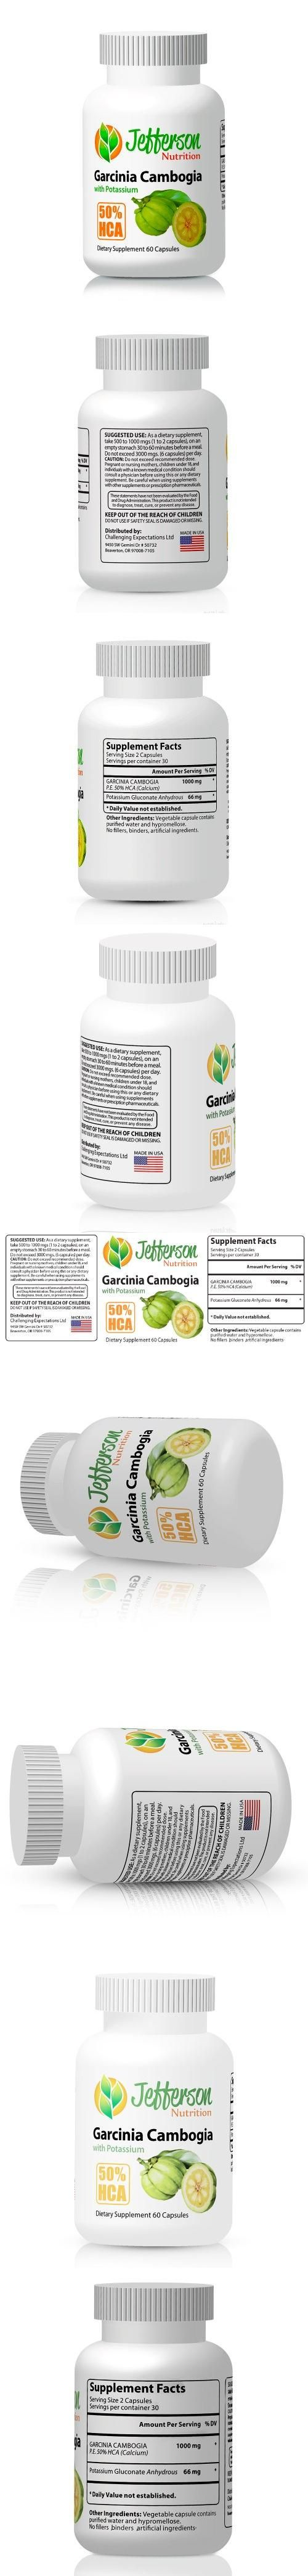 Cambogia Extract 50% HCA, added potassium and no binders, fillers or